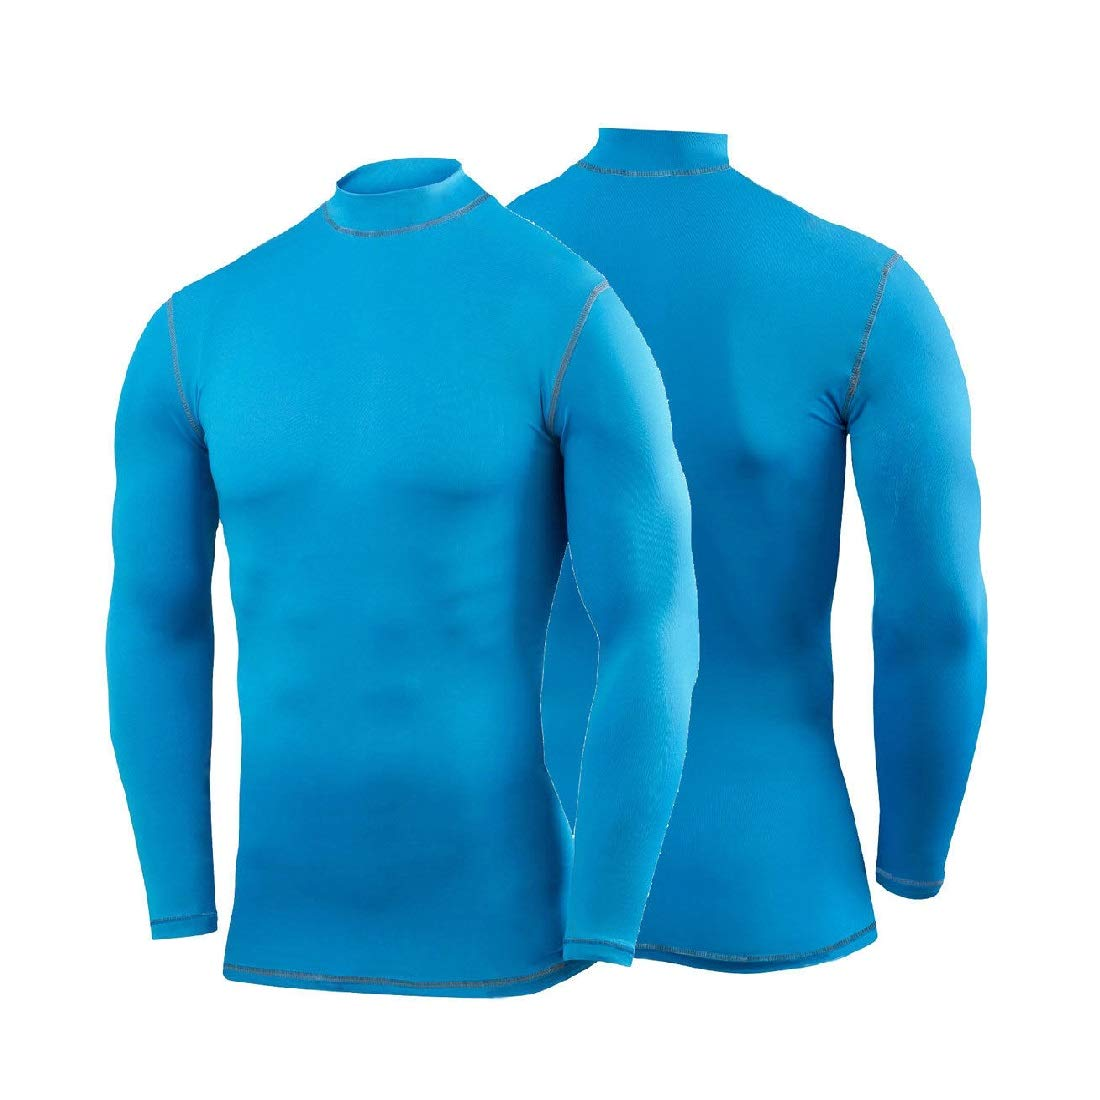 Mens Polo Royal Blue Long Sleeve Compression Shirt Base Layer Tights #HLFN XS-S Peppermint Store